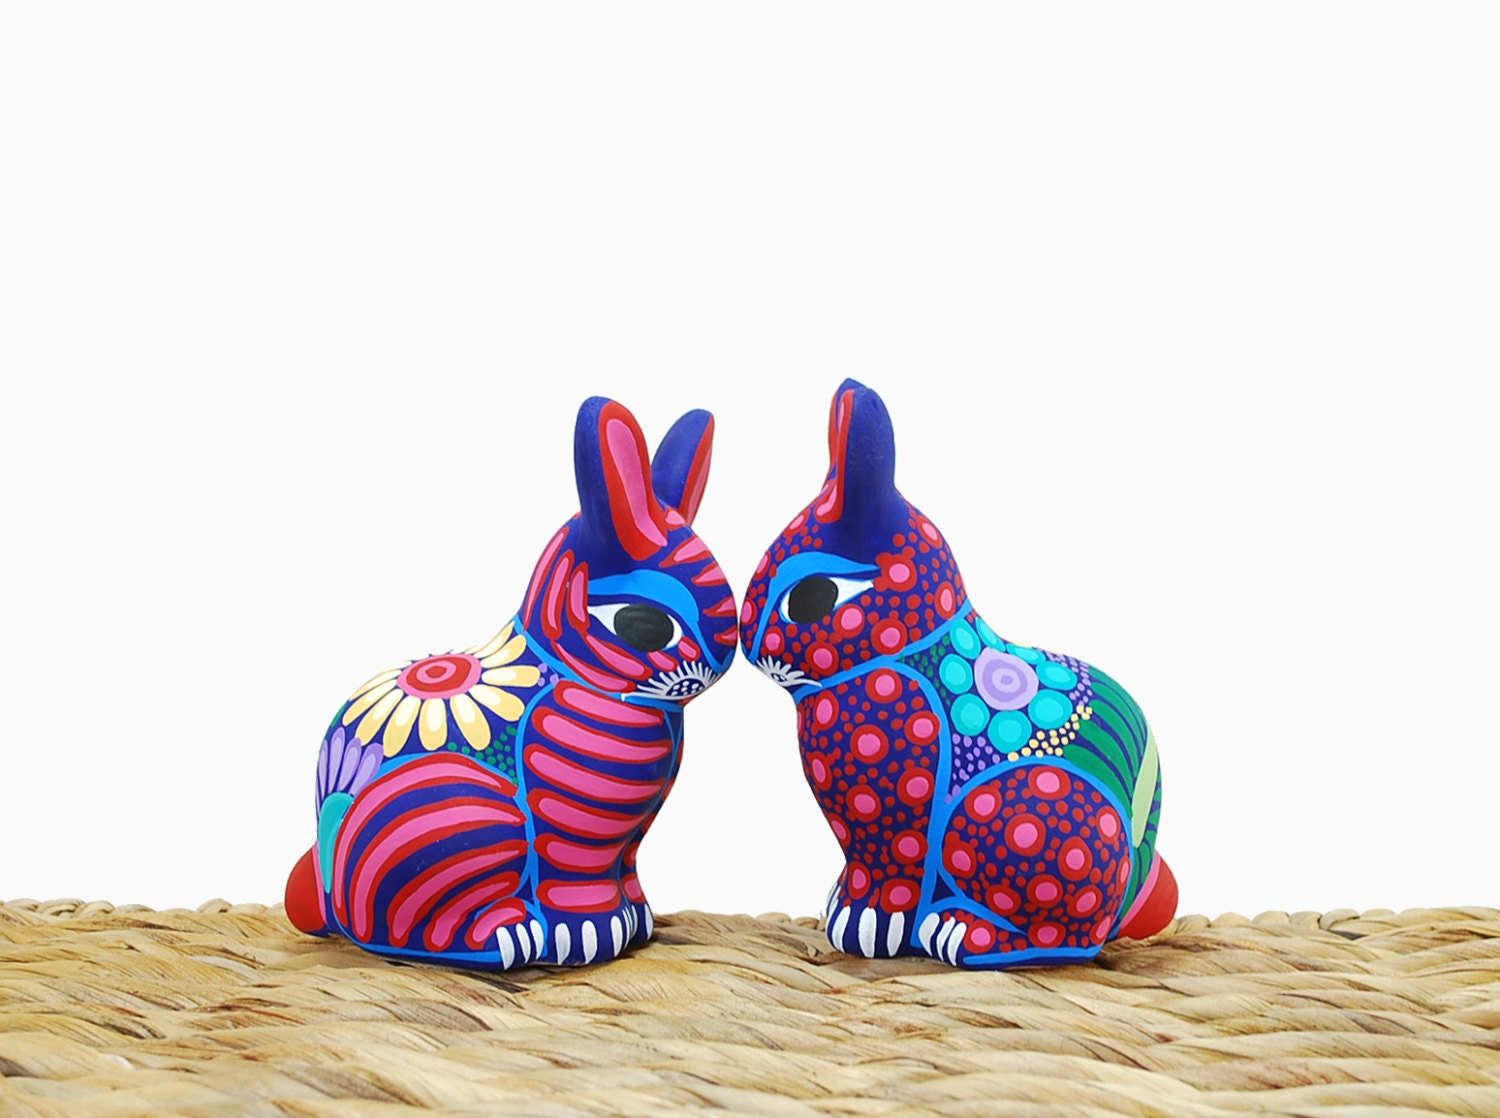 Animal ceramic sculpture - Easter rabbit - Easter decoration pottery rabbit  - pottery animal - Red ceramics - HolaPapelMache